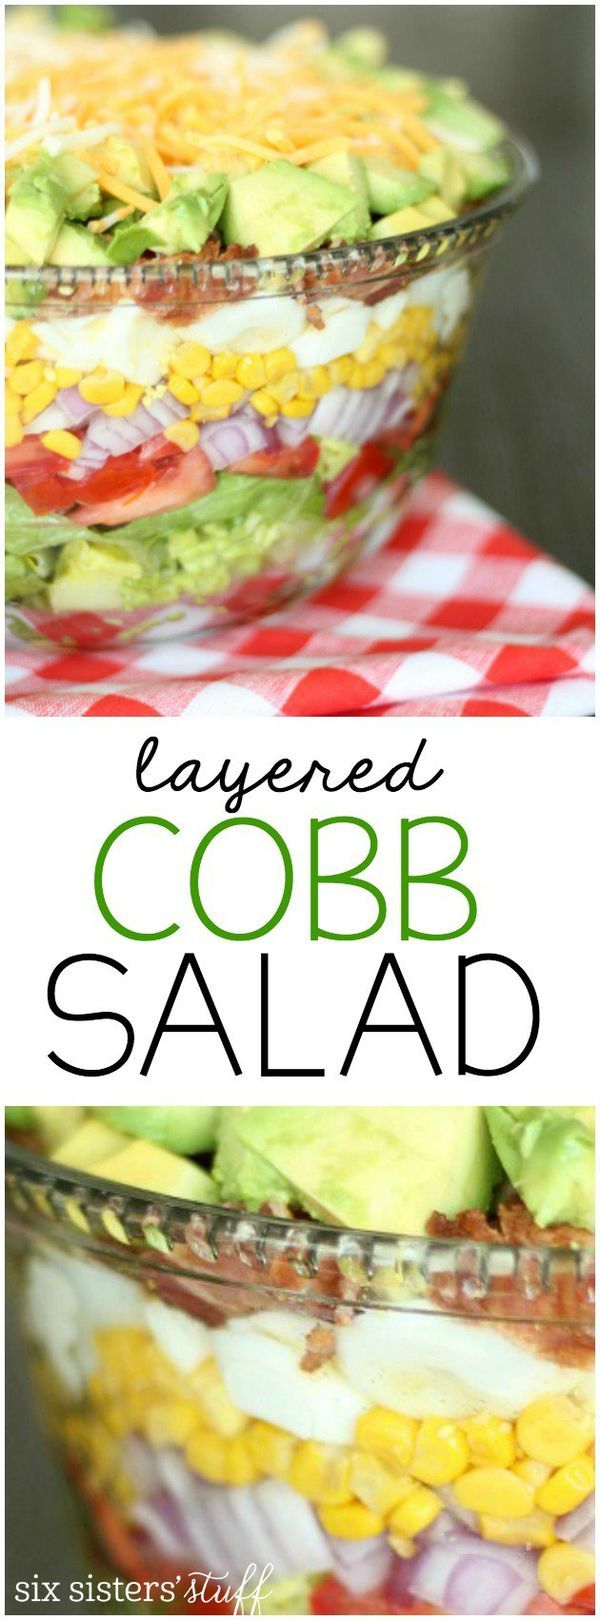 This delicious layered cobb salad is perfect for parties and barbecues! This makes enough to feed the whole family for dinner or as a potluck selection.